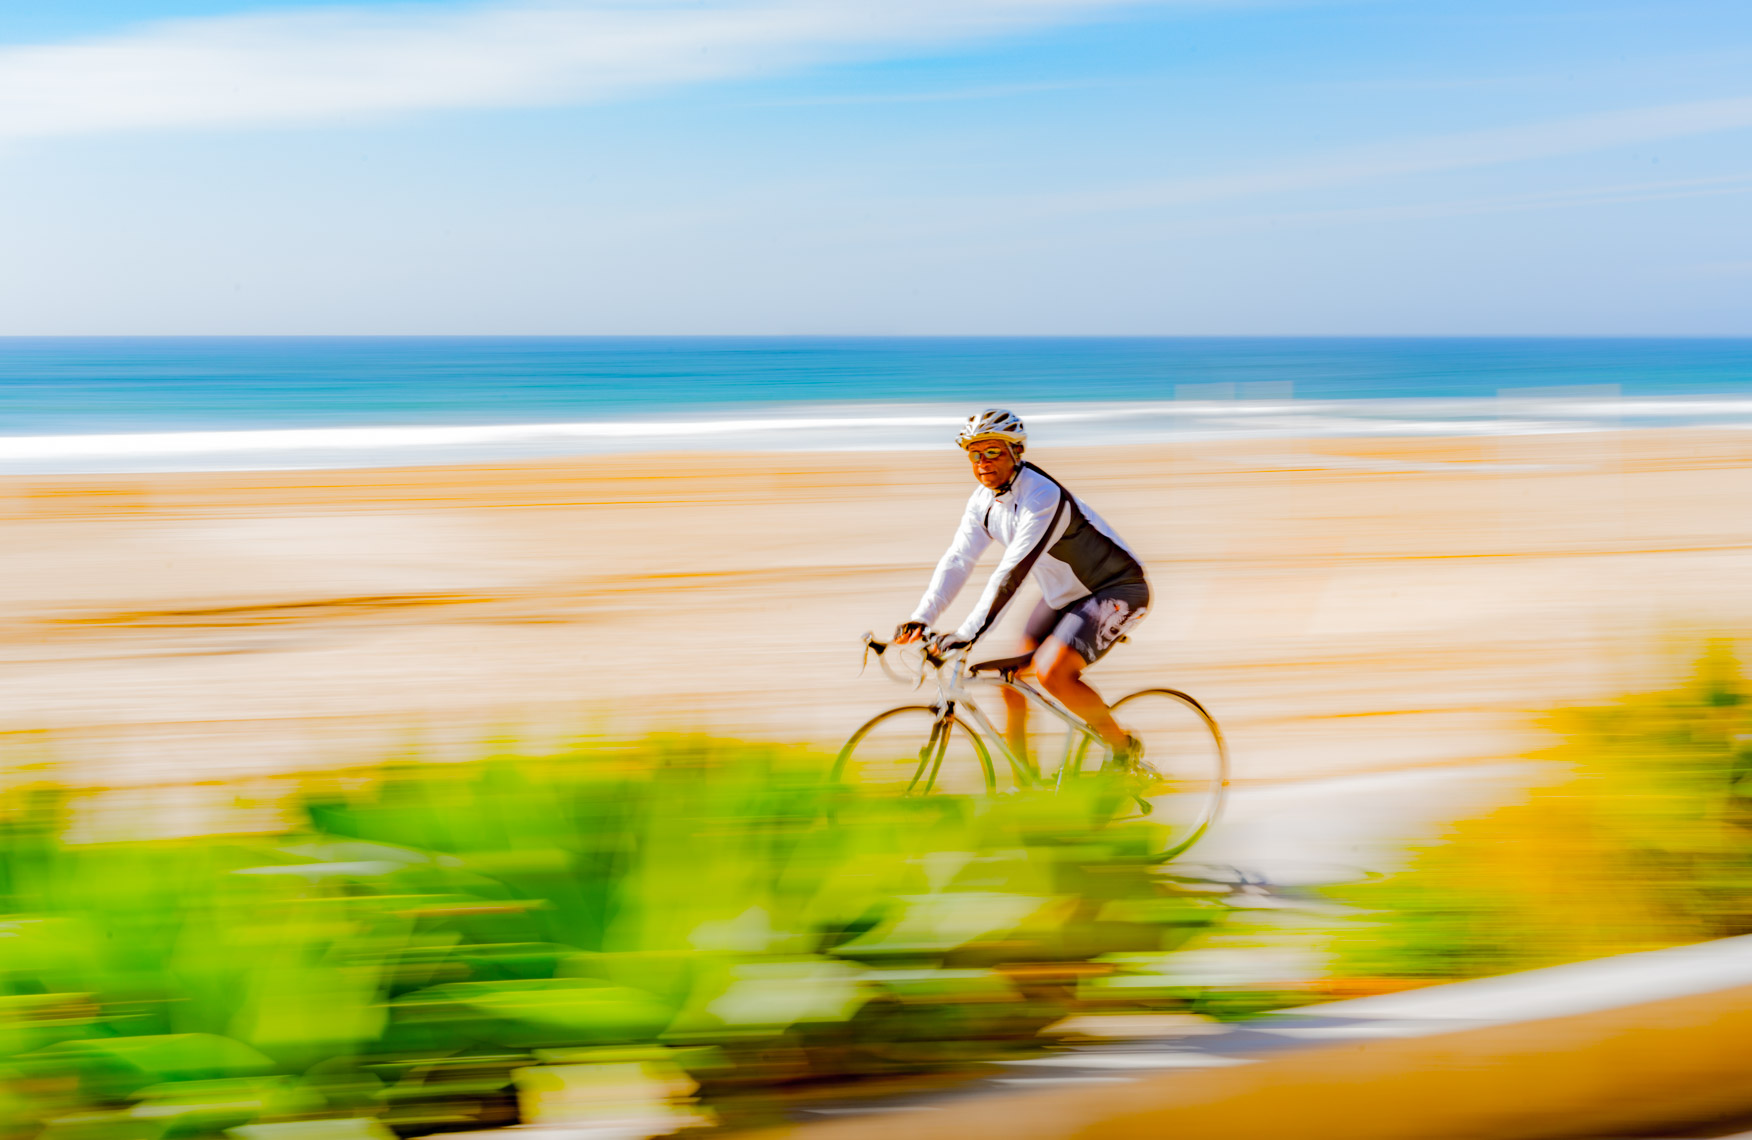 man bike blur beach